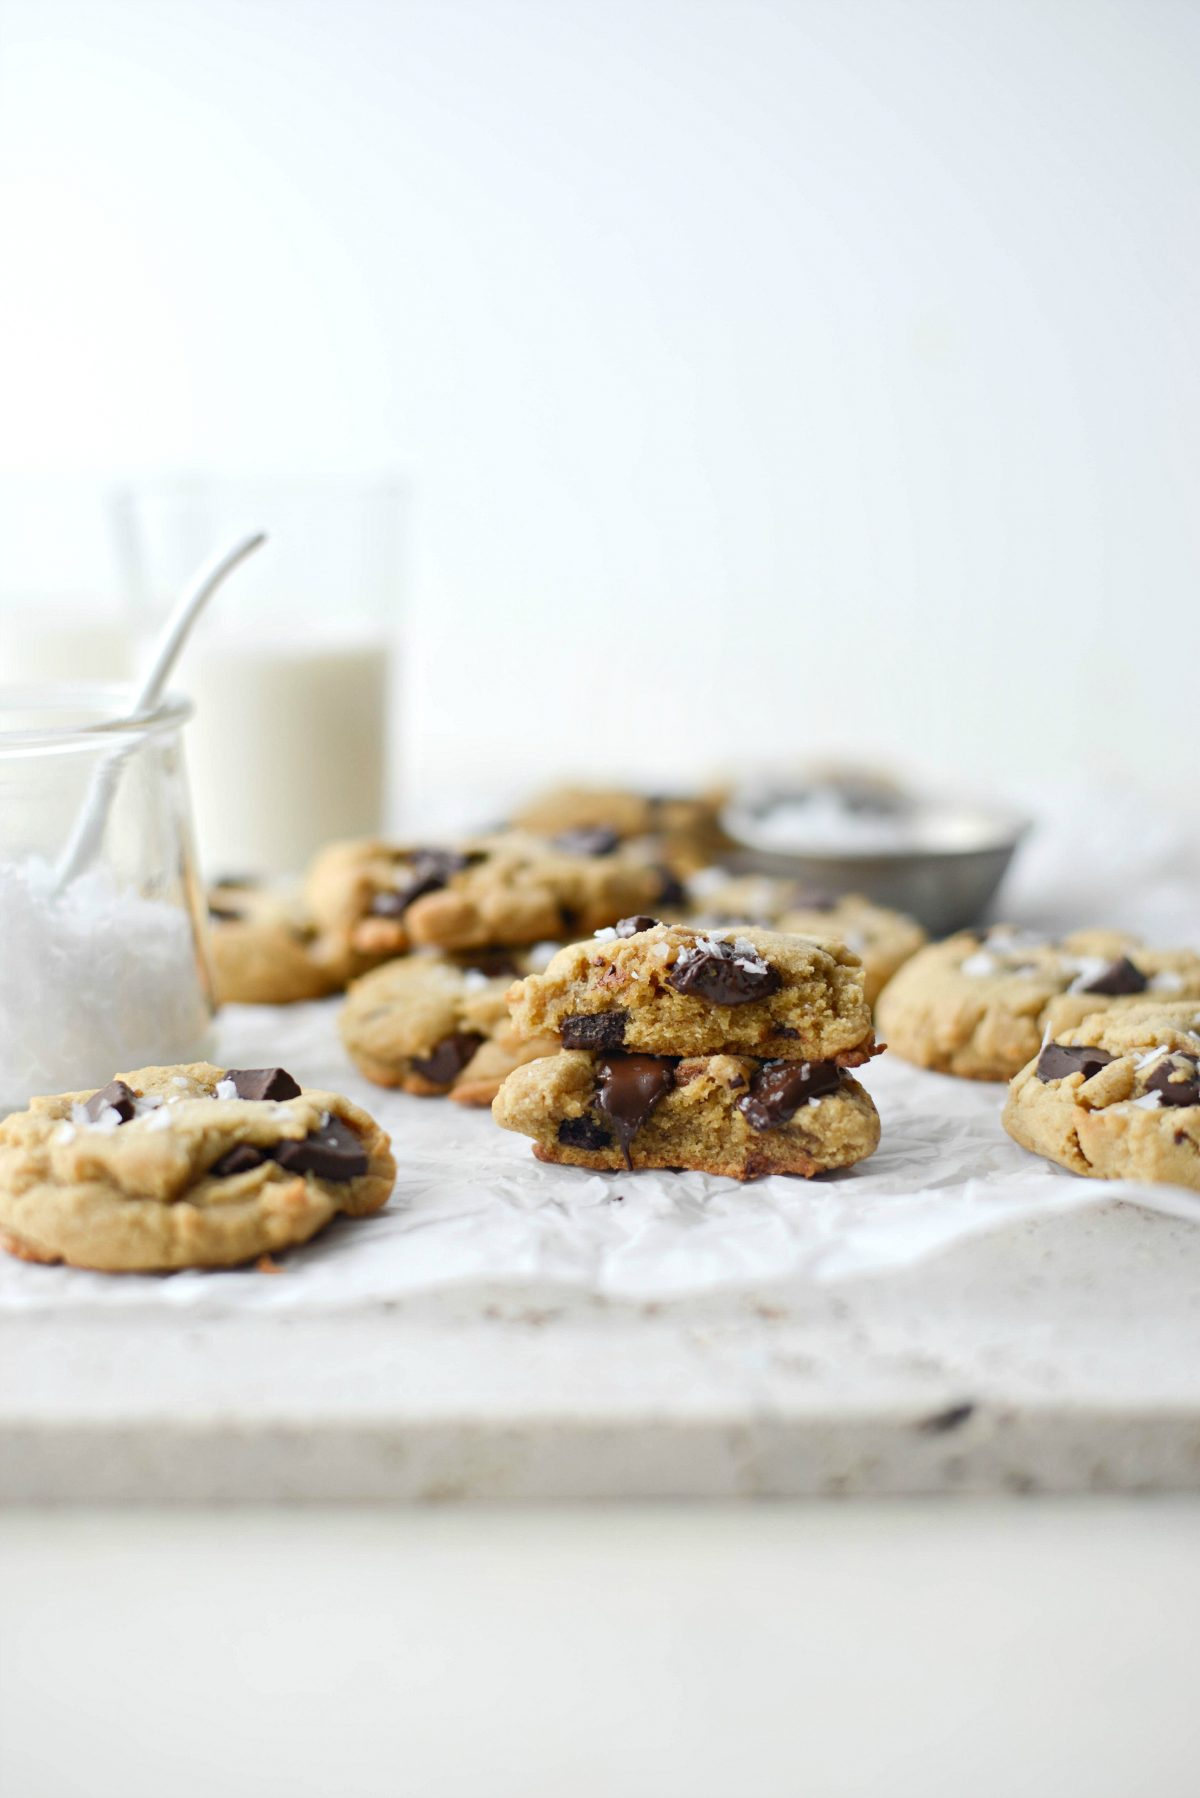 Salted Dark Chocolate Chunk Tahini Cookies l SimplyScratch.com #tahini #chocolate #chunk #seasalt #cookies